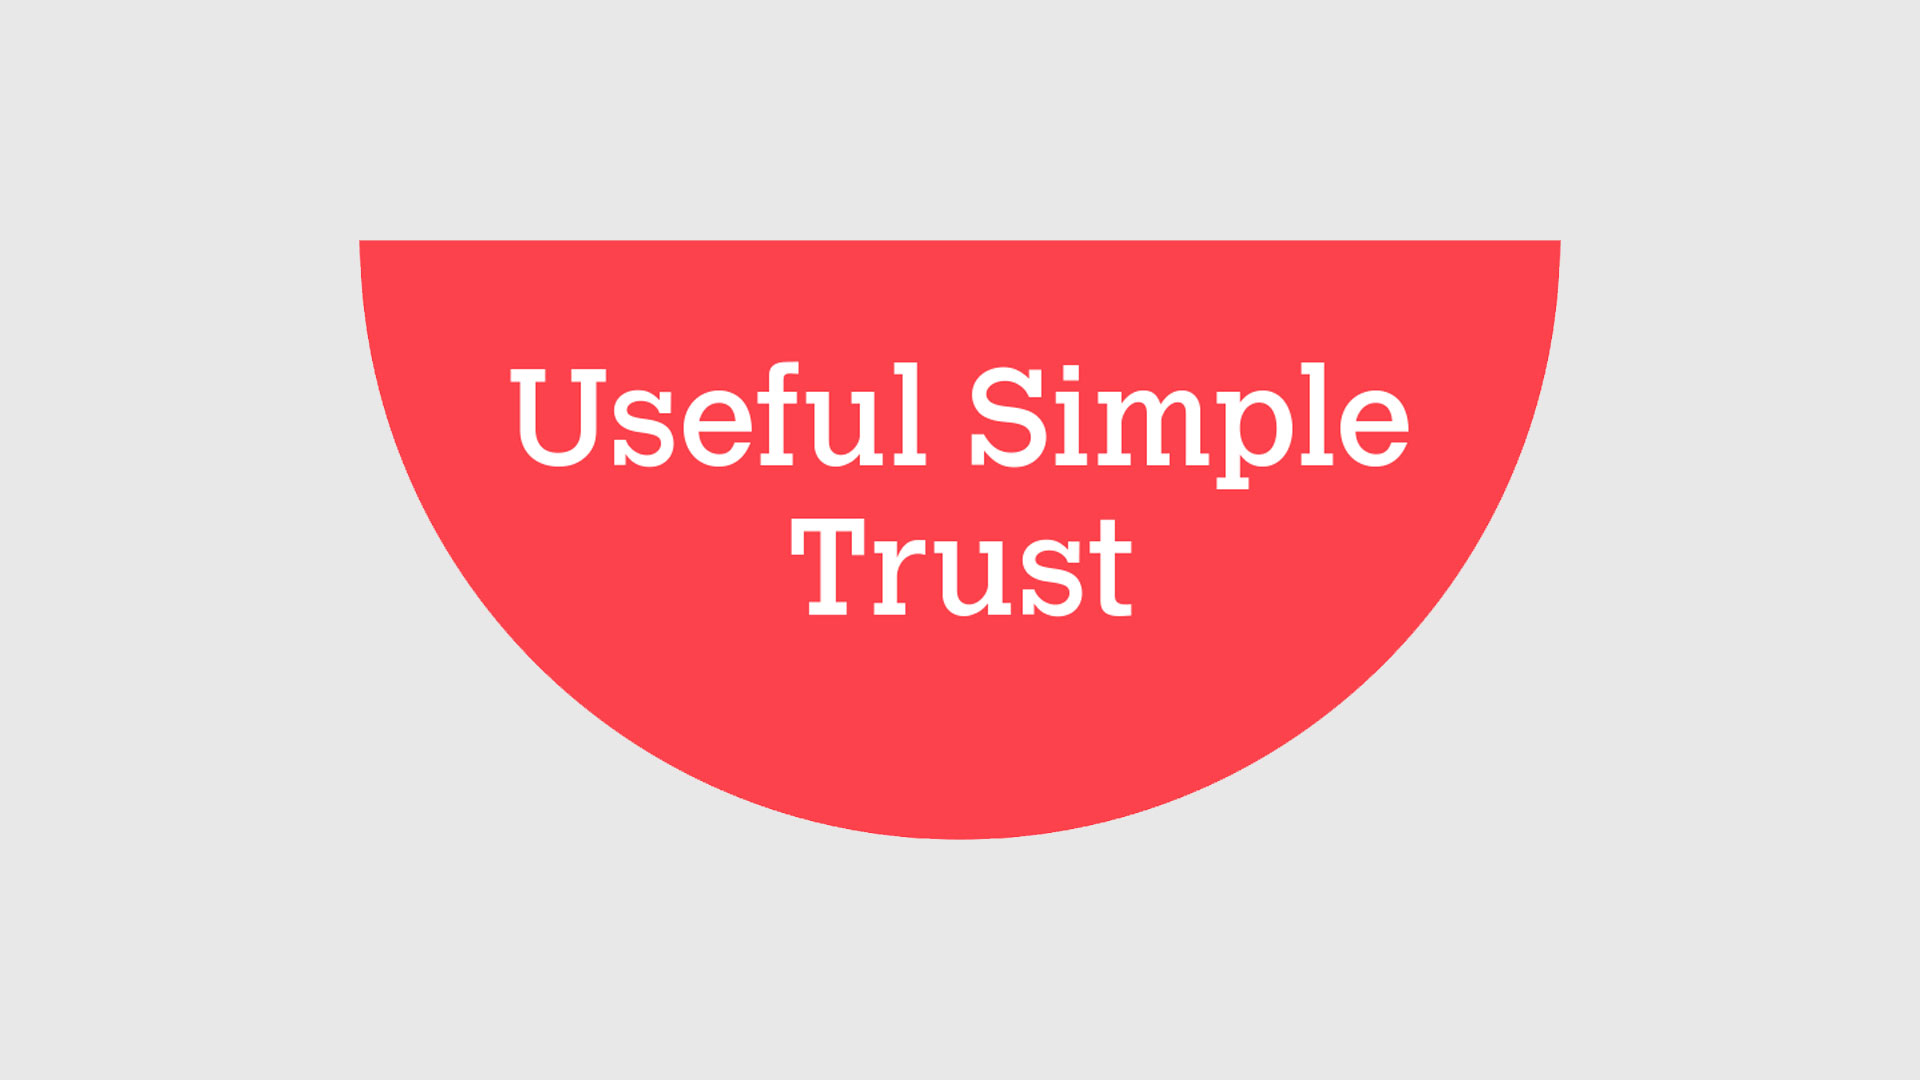 Presentation Skills with The Useful Simple Trust